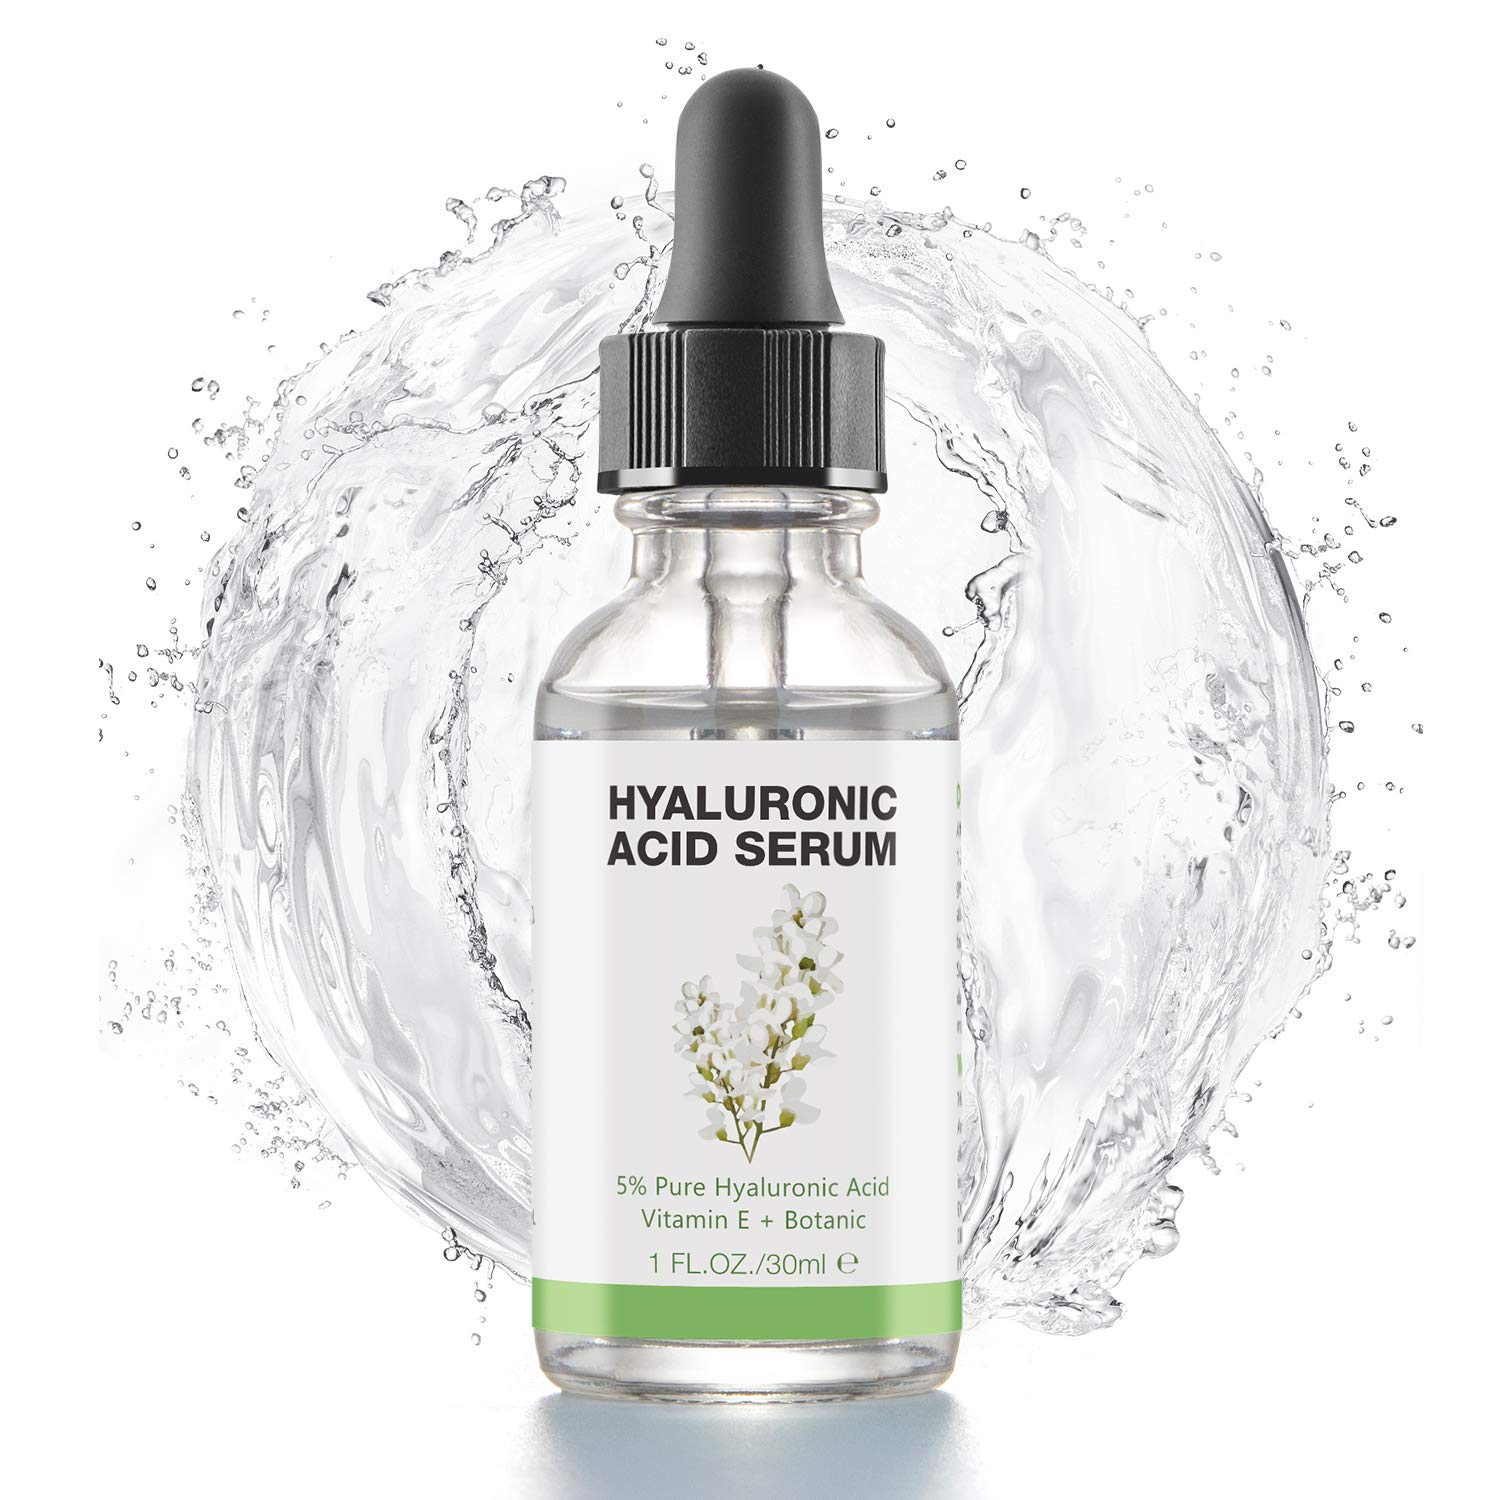 Hyaluronic Acid Serum for Skin - 100% Pure Organic HA, Anti-Aging Face Serum for Dry Skin, Fine Lines. Hydrating, Repairing, Replumping, Suitable for Sensitive Skin, 1 Fl. Oz